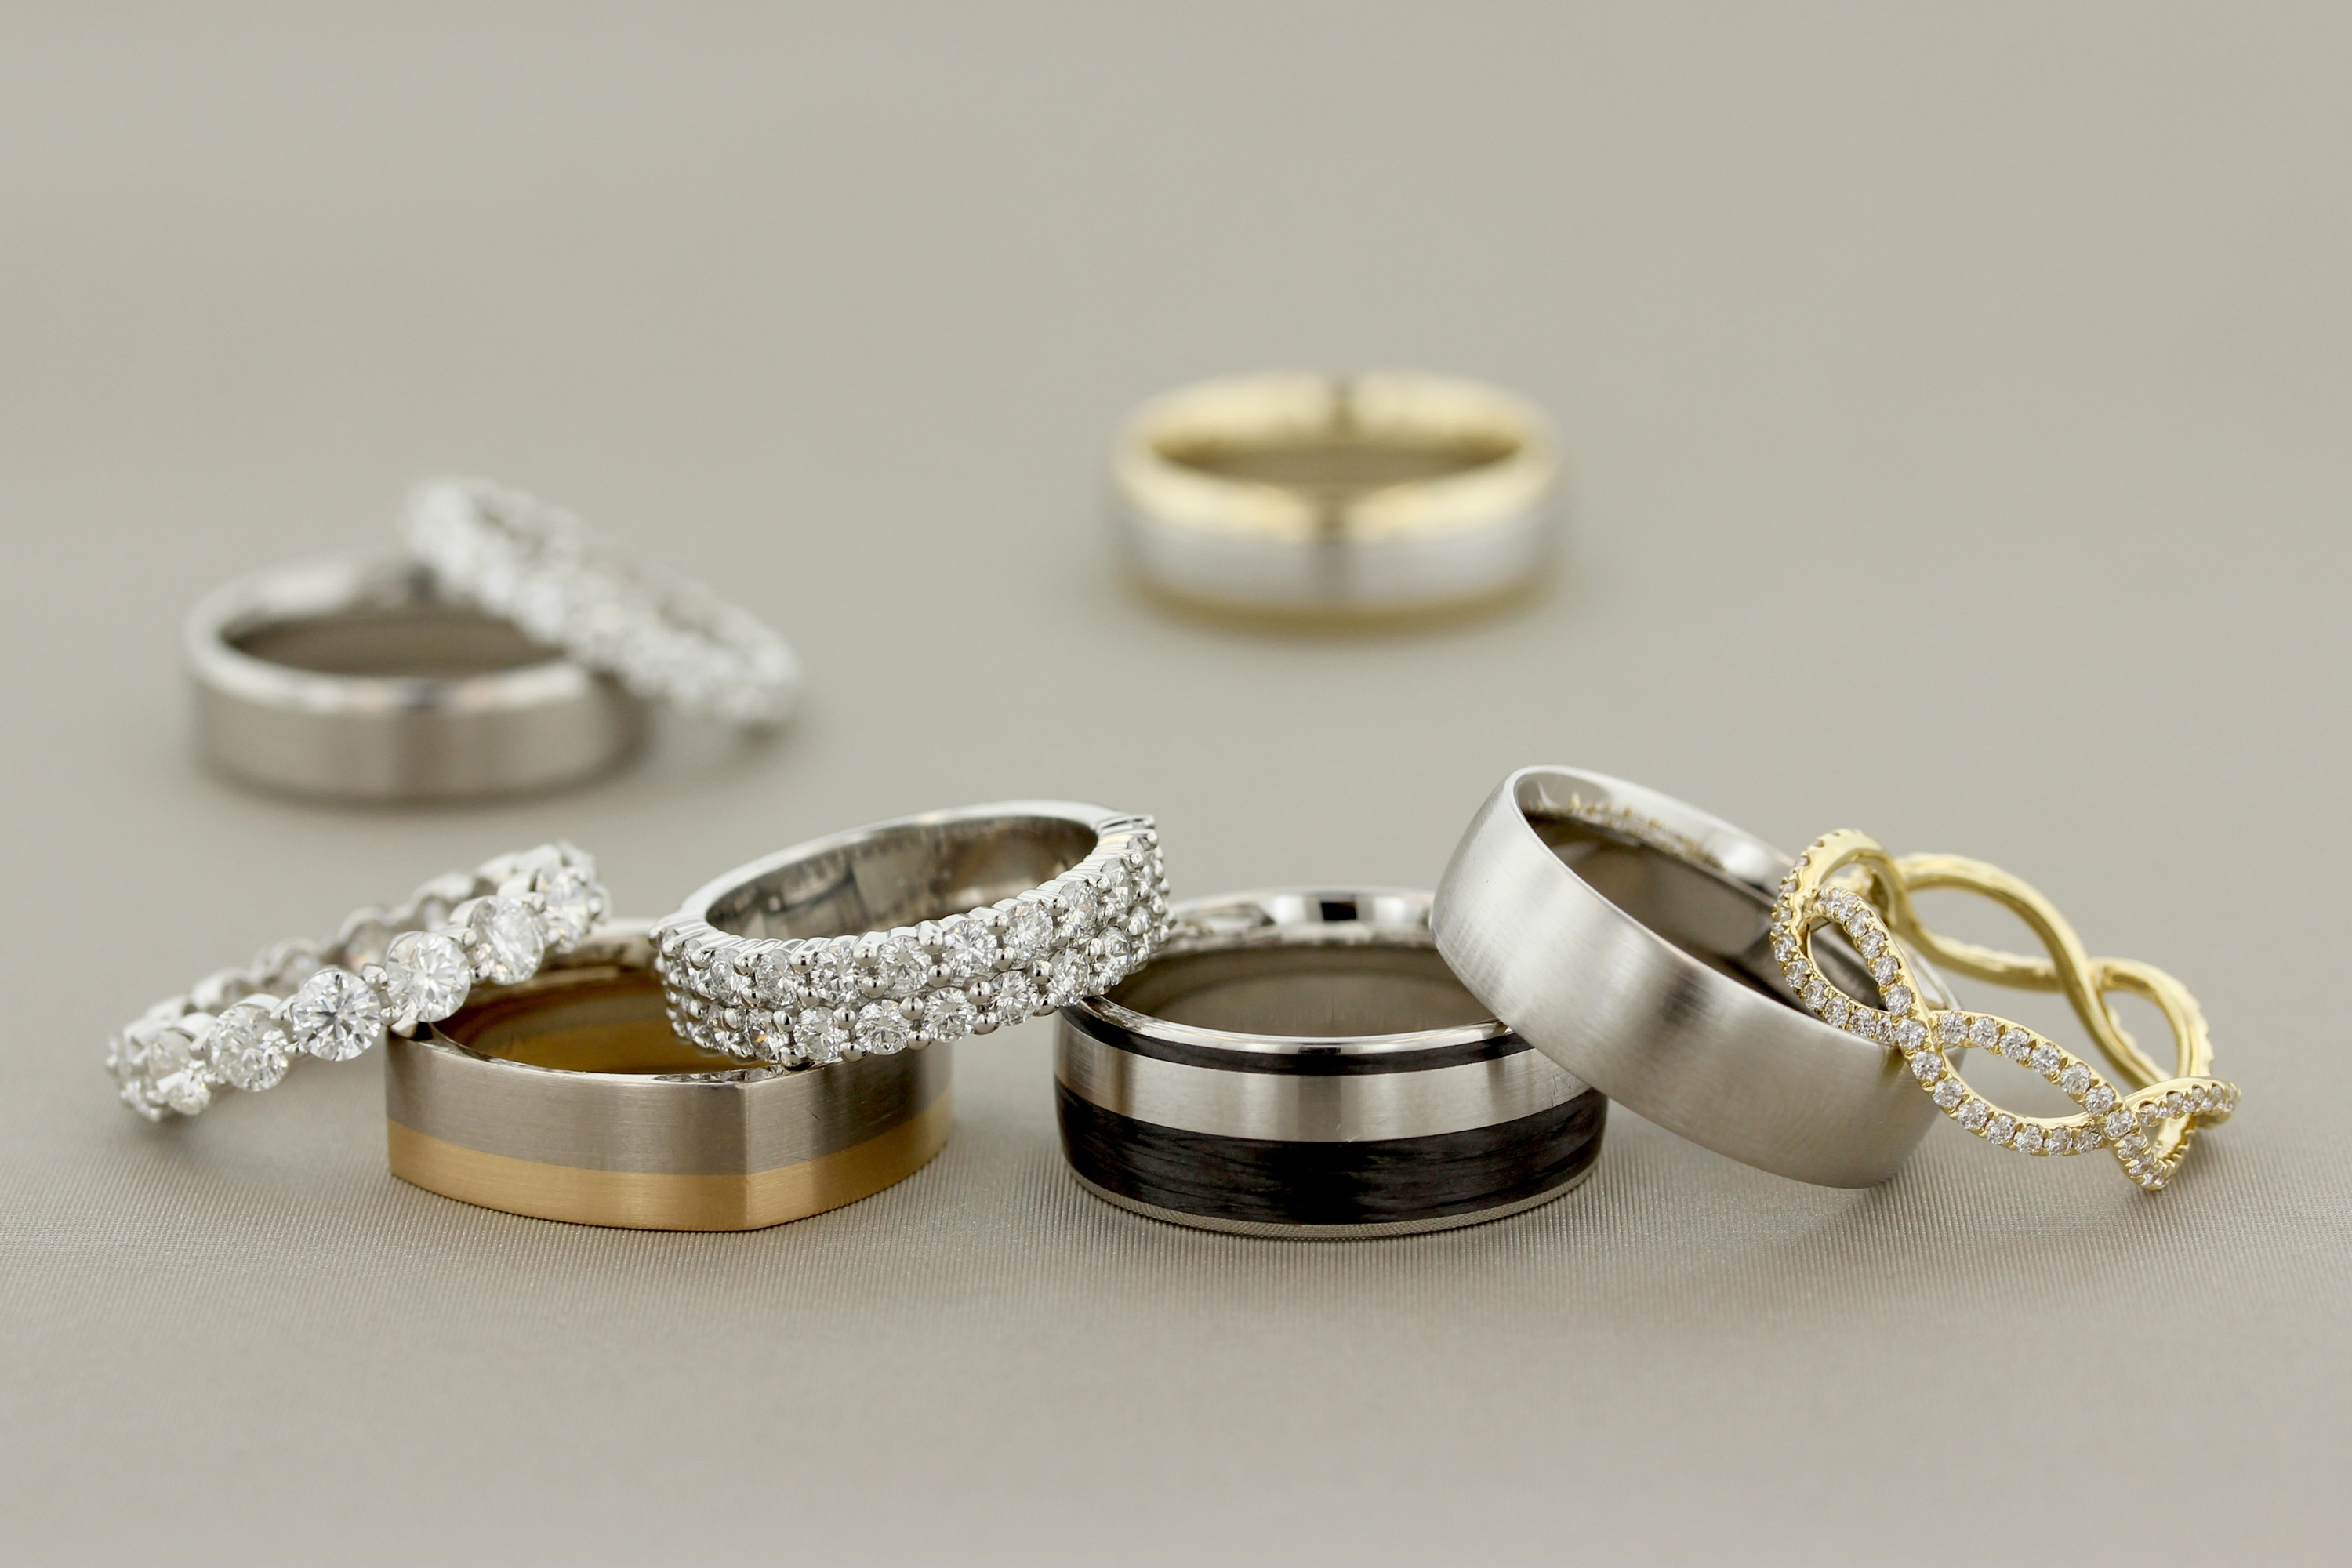 Wedding Bands - How To Clean and Maintain